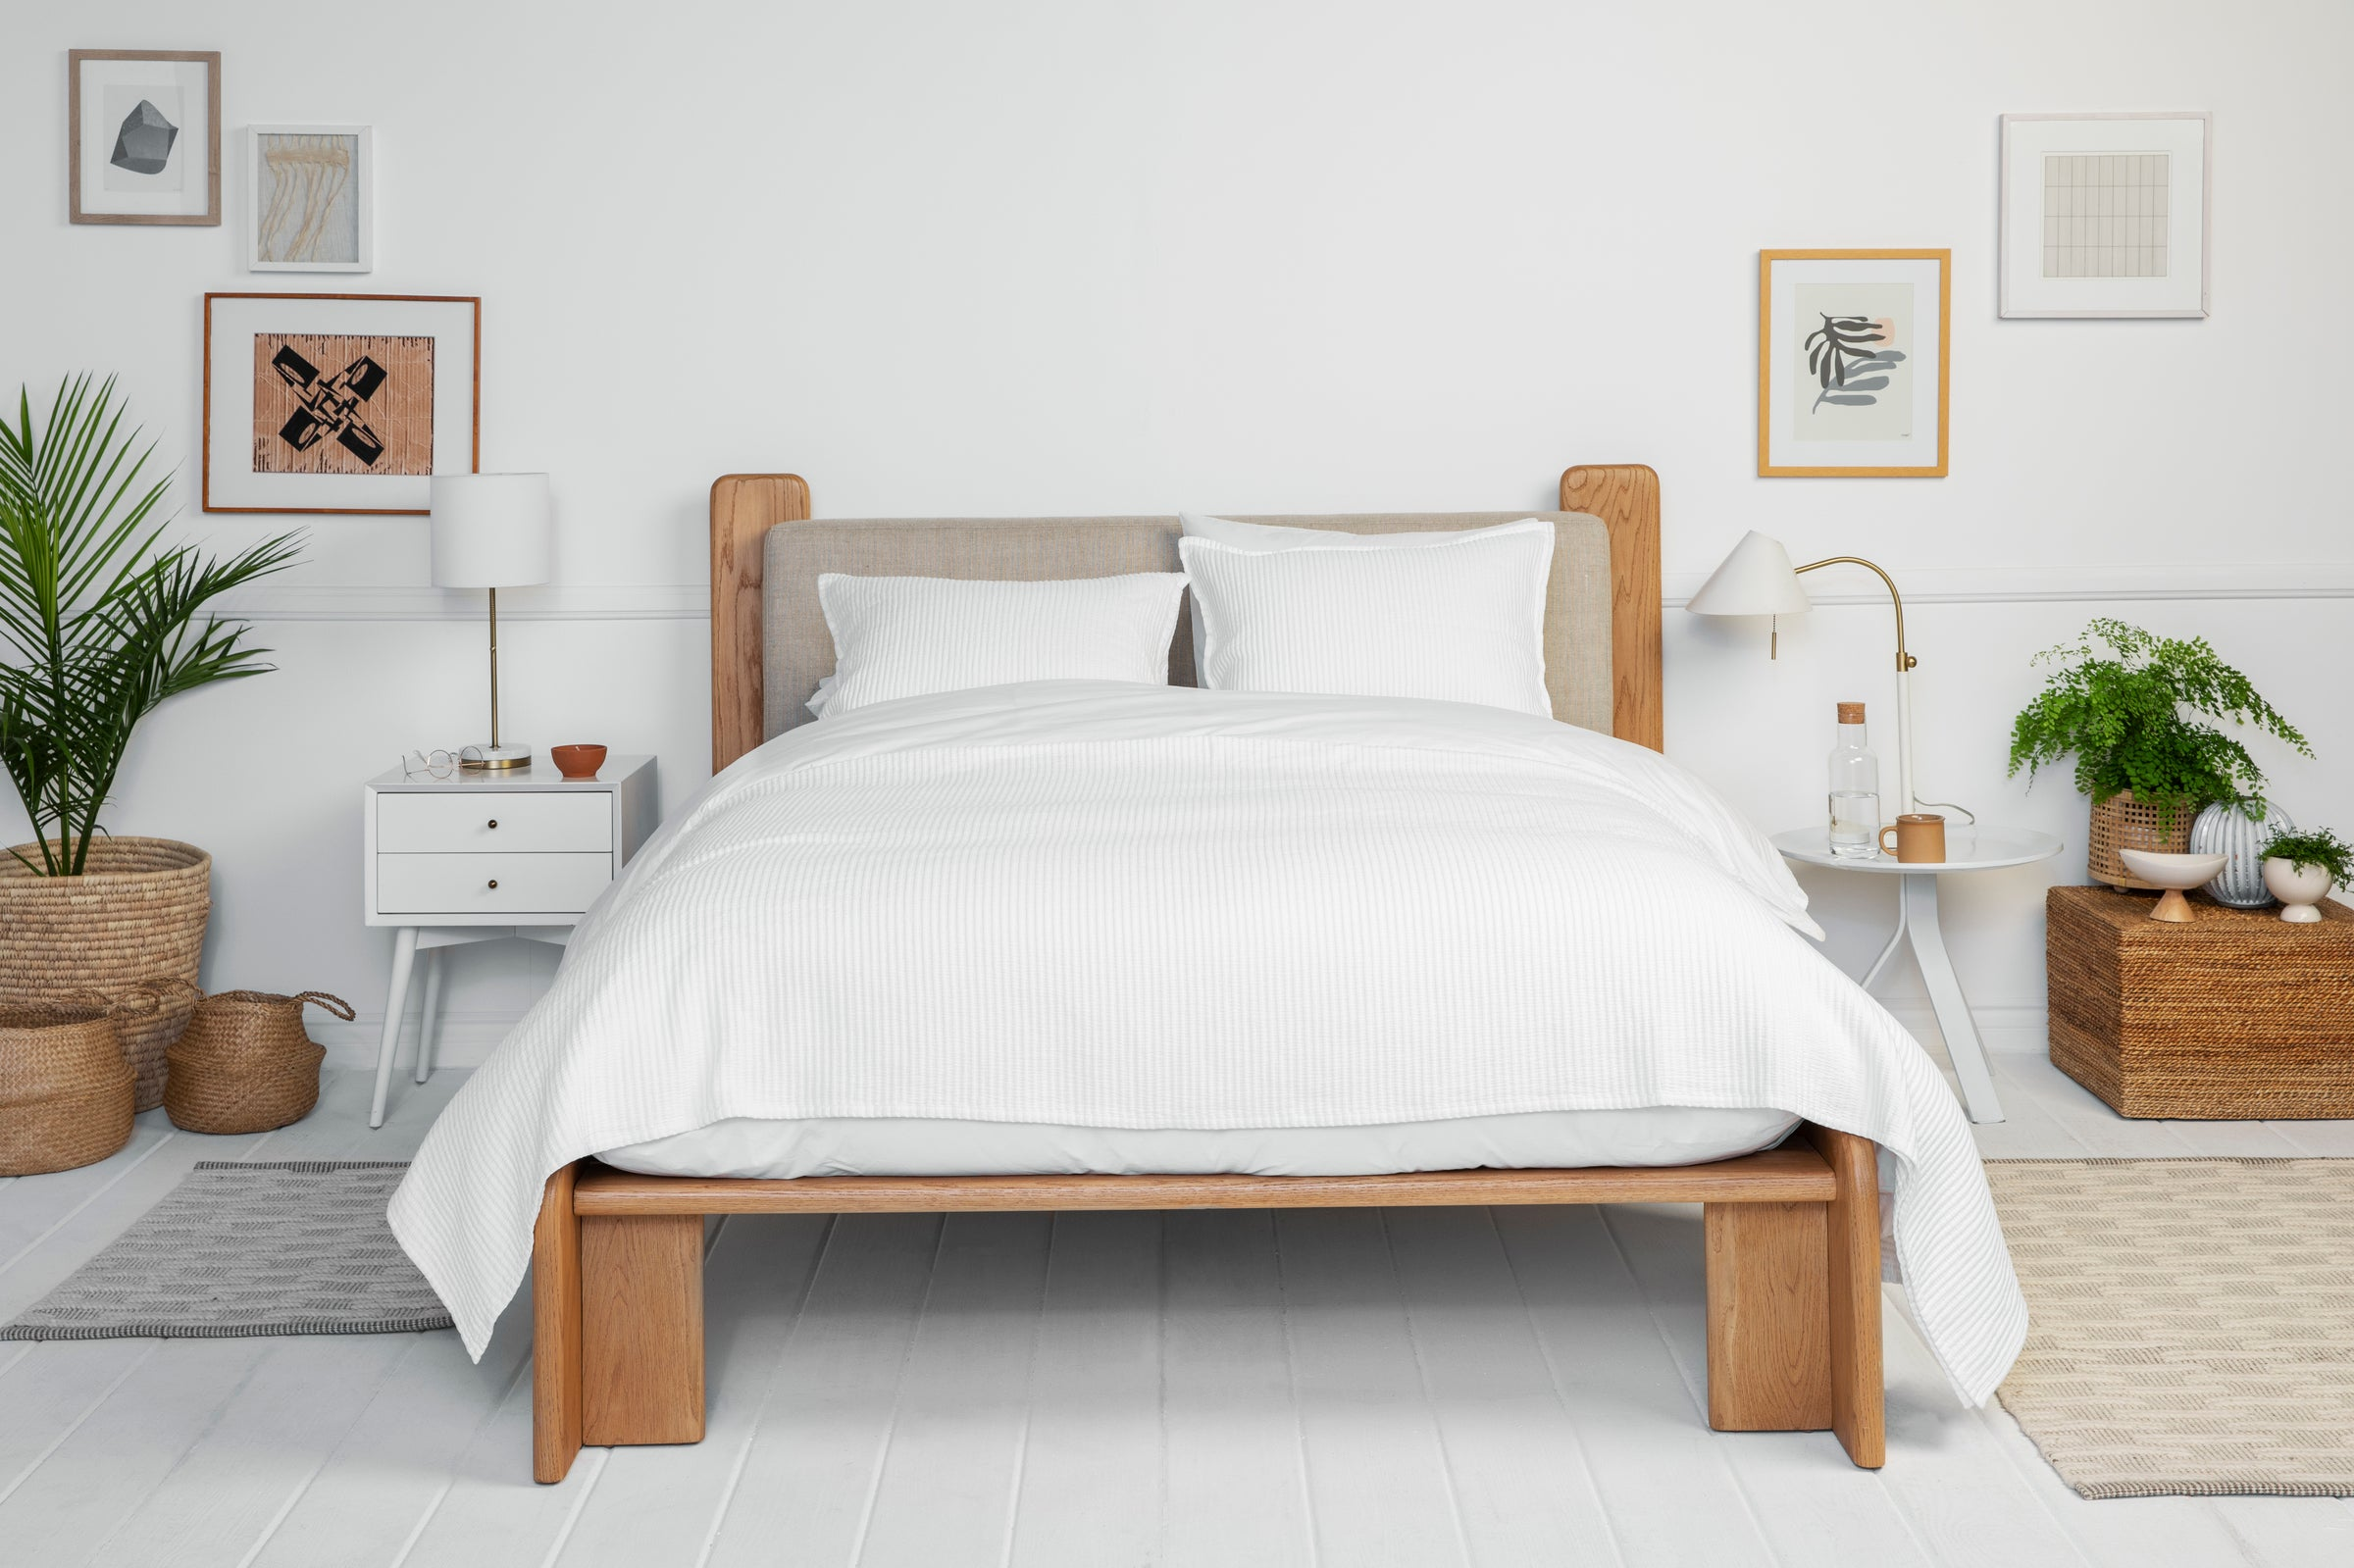 Ojai Bed - a Lawson-Fenning collaboration with Parachute Home. #californiastyle #platformbed #organicstyle #bedroomfurniture